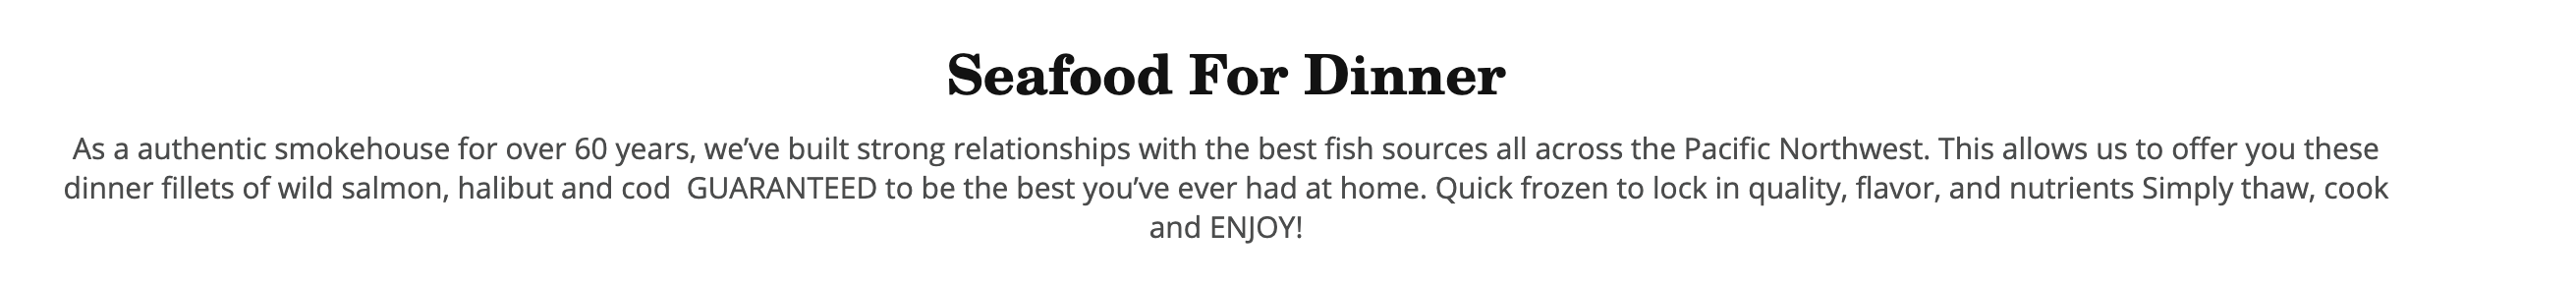 image-811839-Seafood_for_Dinner-45c48.png